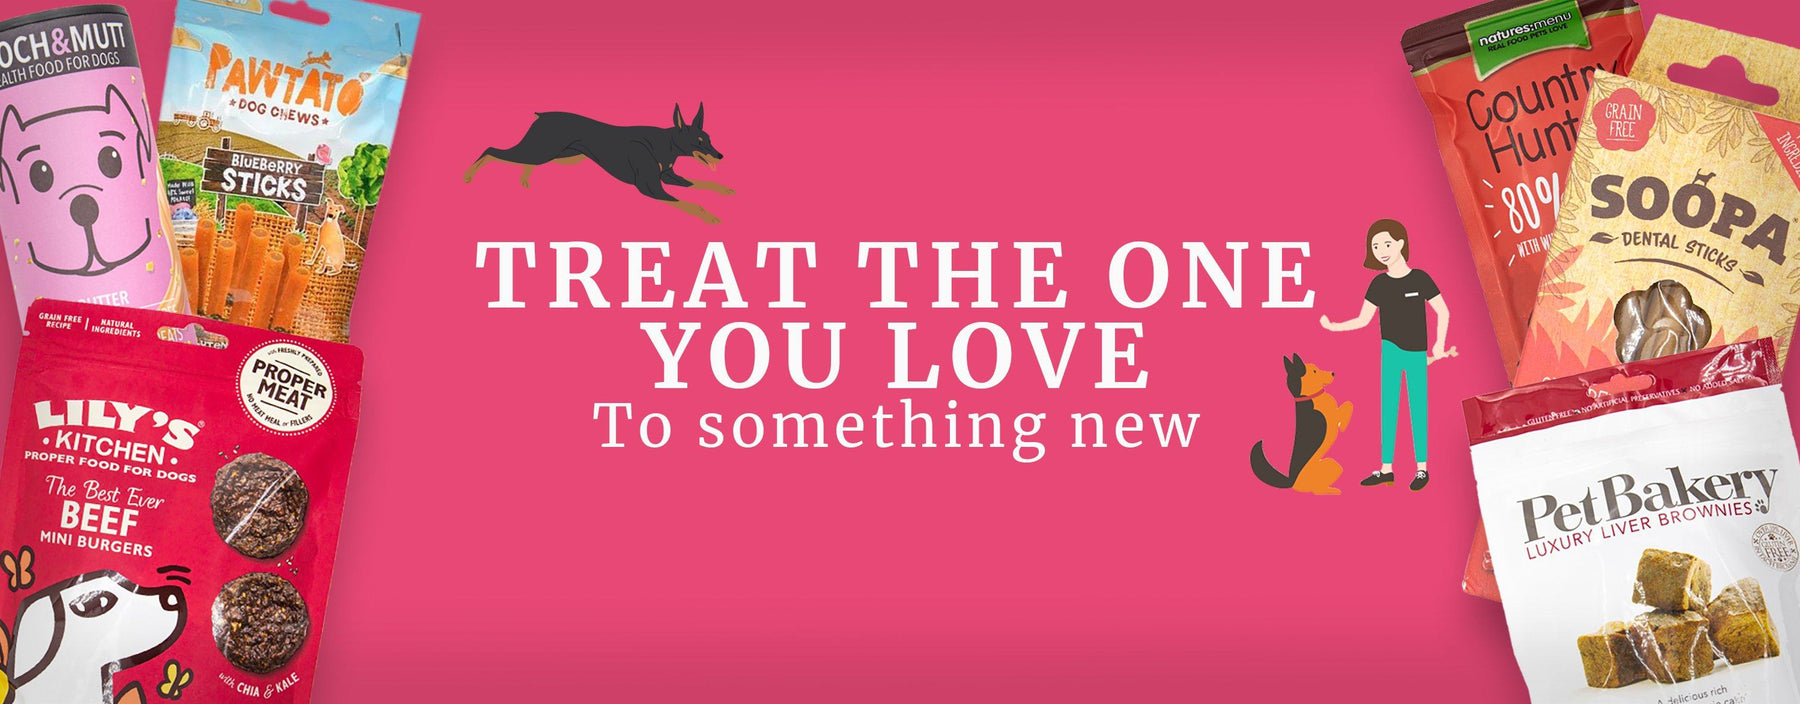 Treat The One You Love To Something New